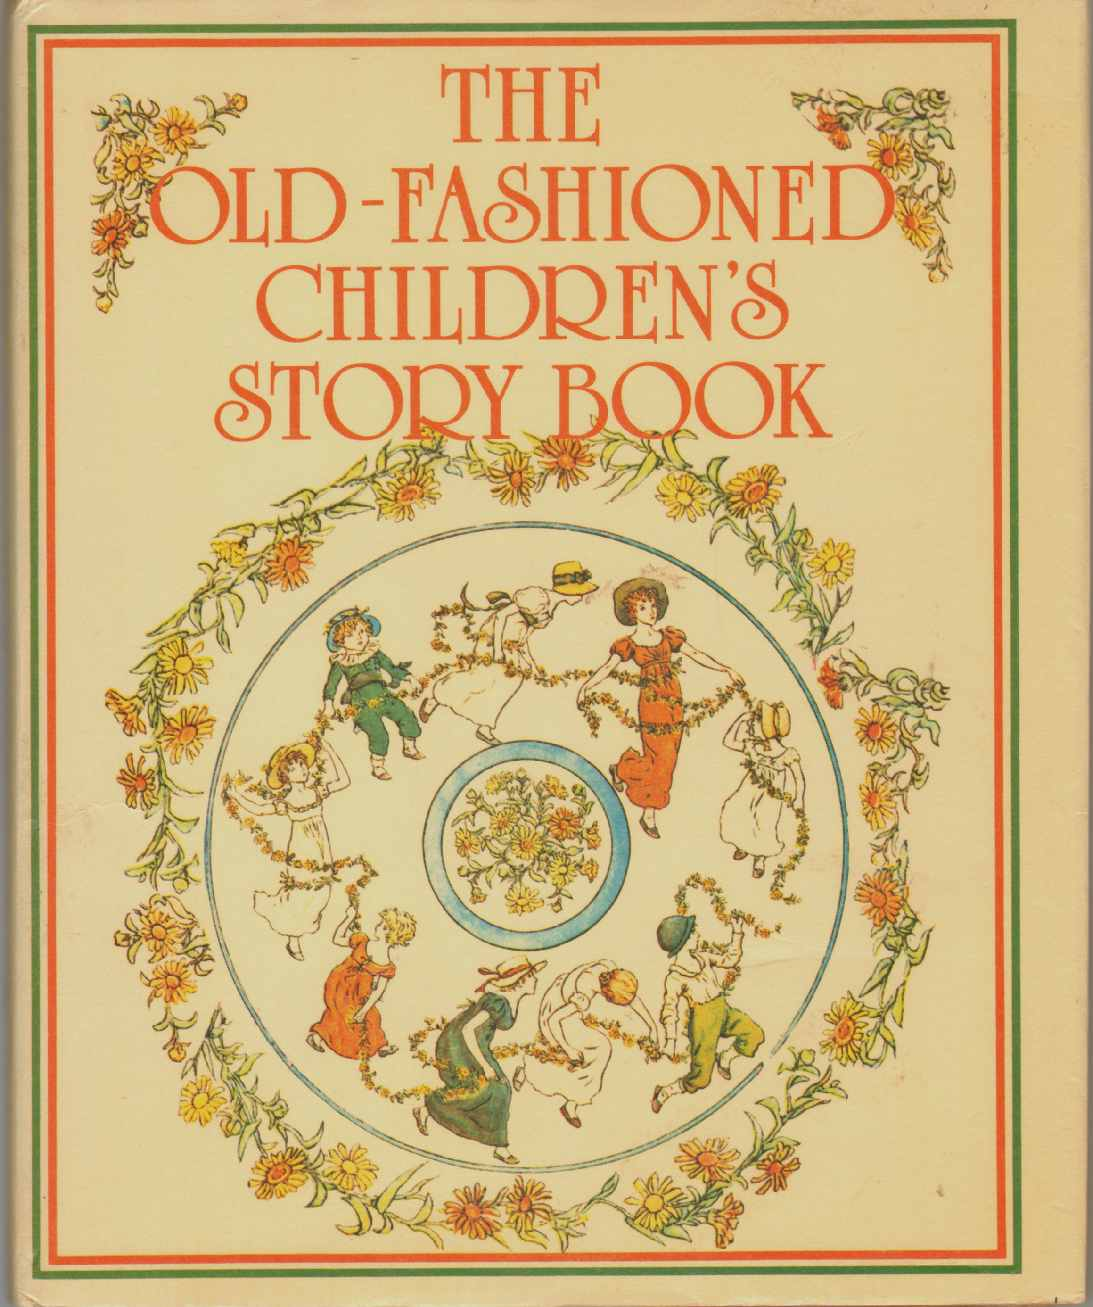 Image for THE OLD-FASHIONED CHILDREN'S STORYBOOK